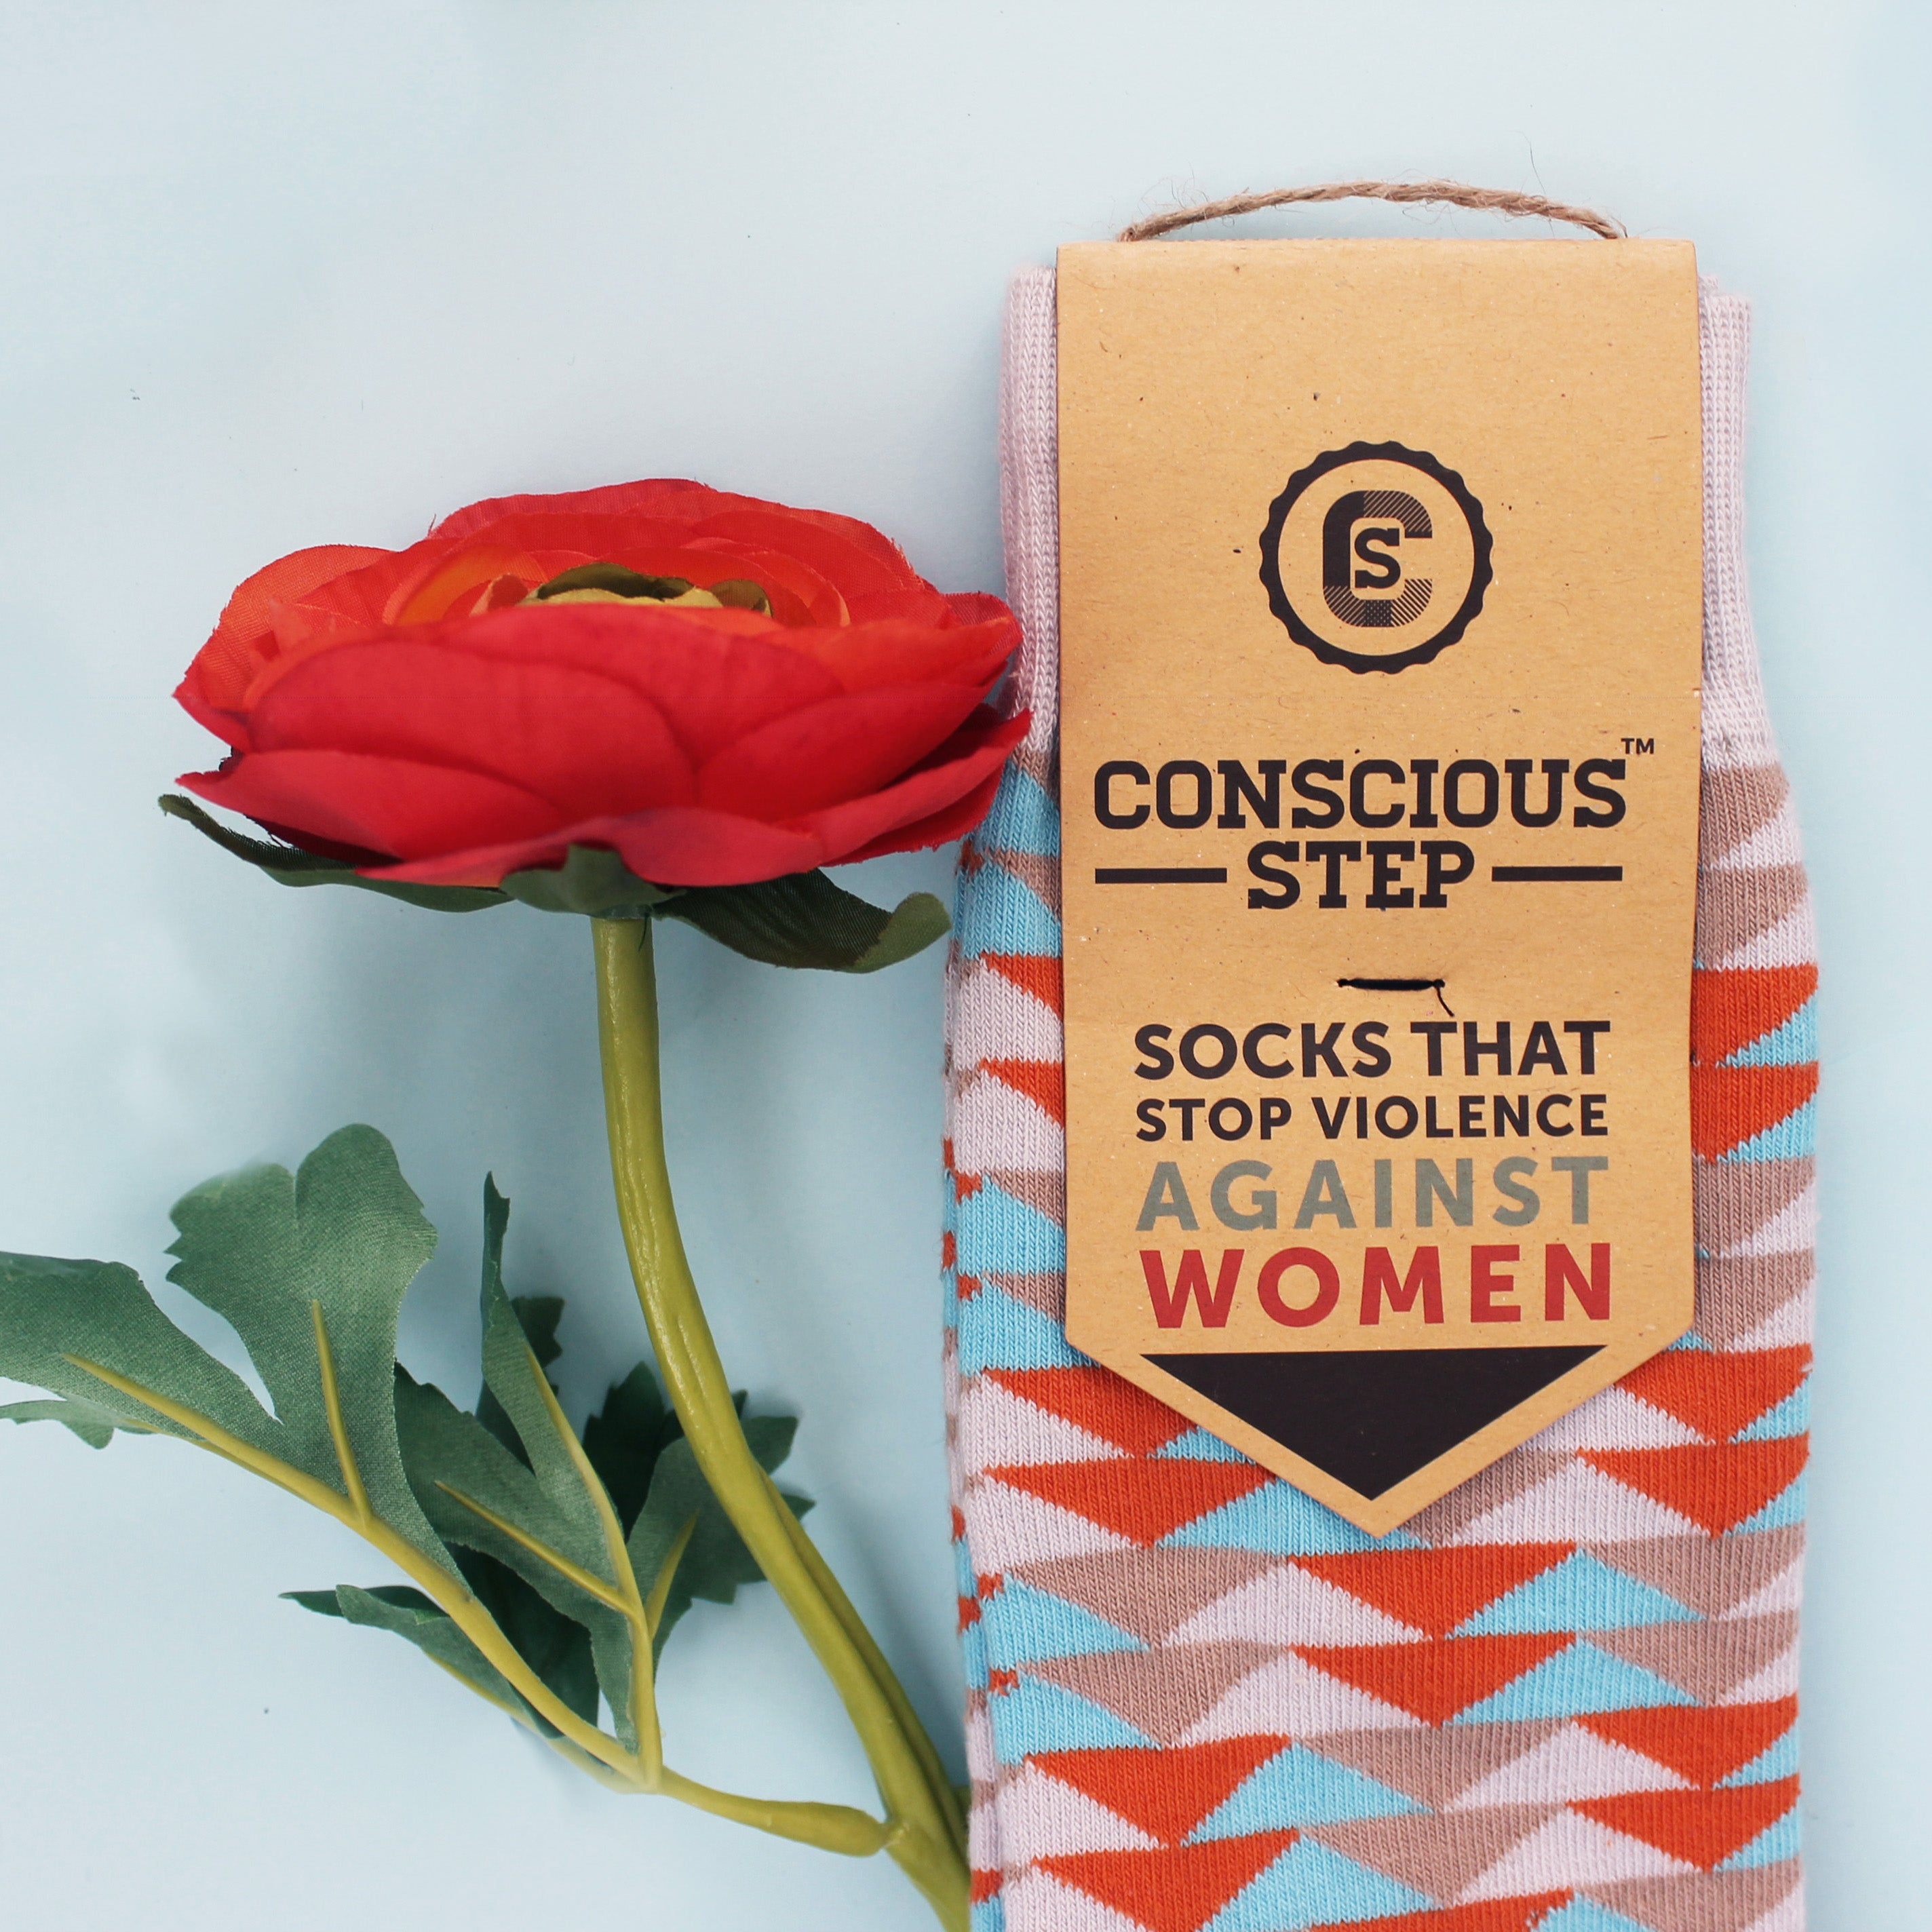 Socks that Fight Poverty – Conscious Step